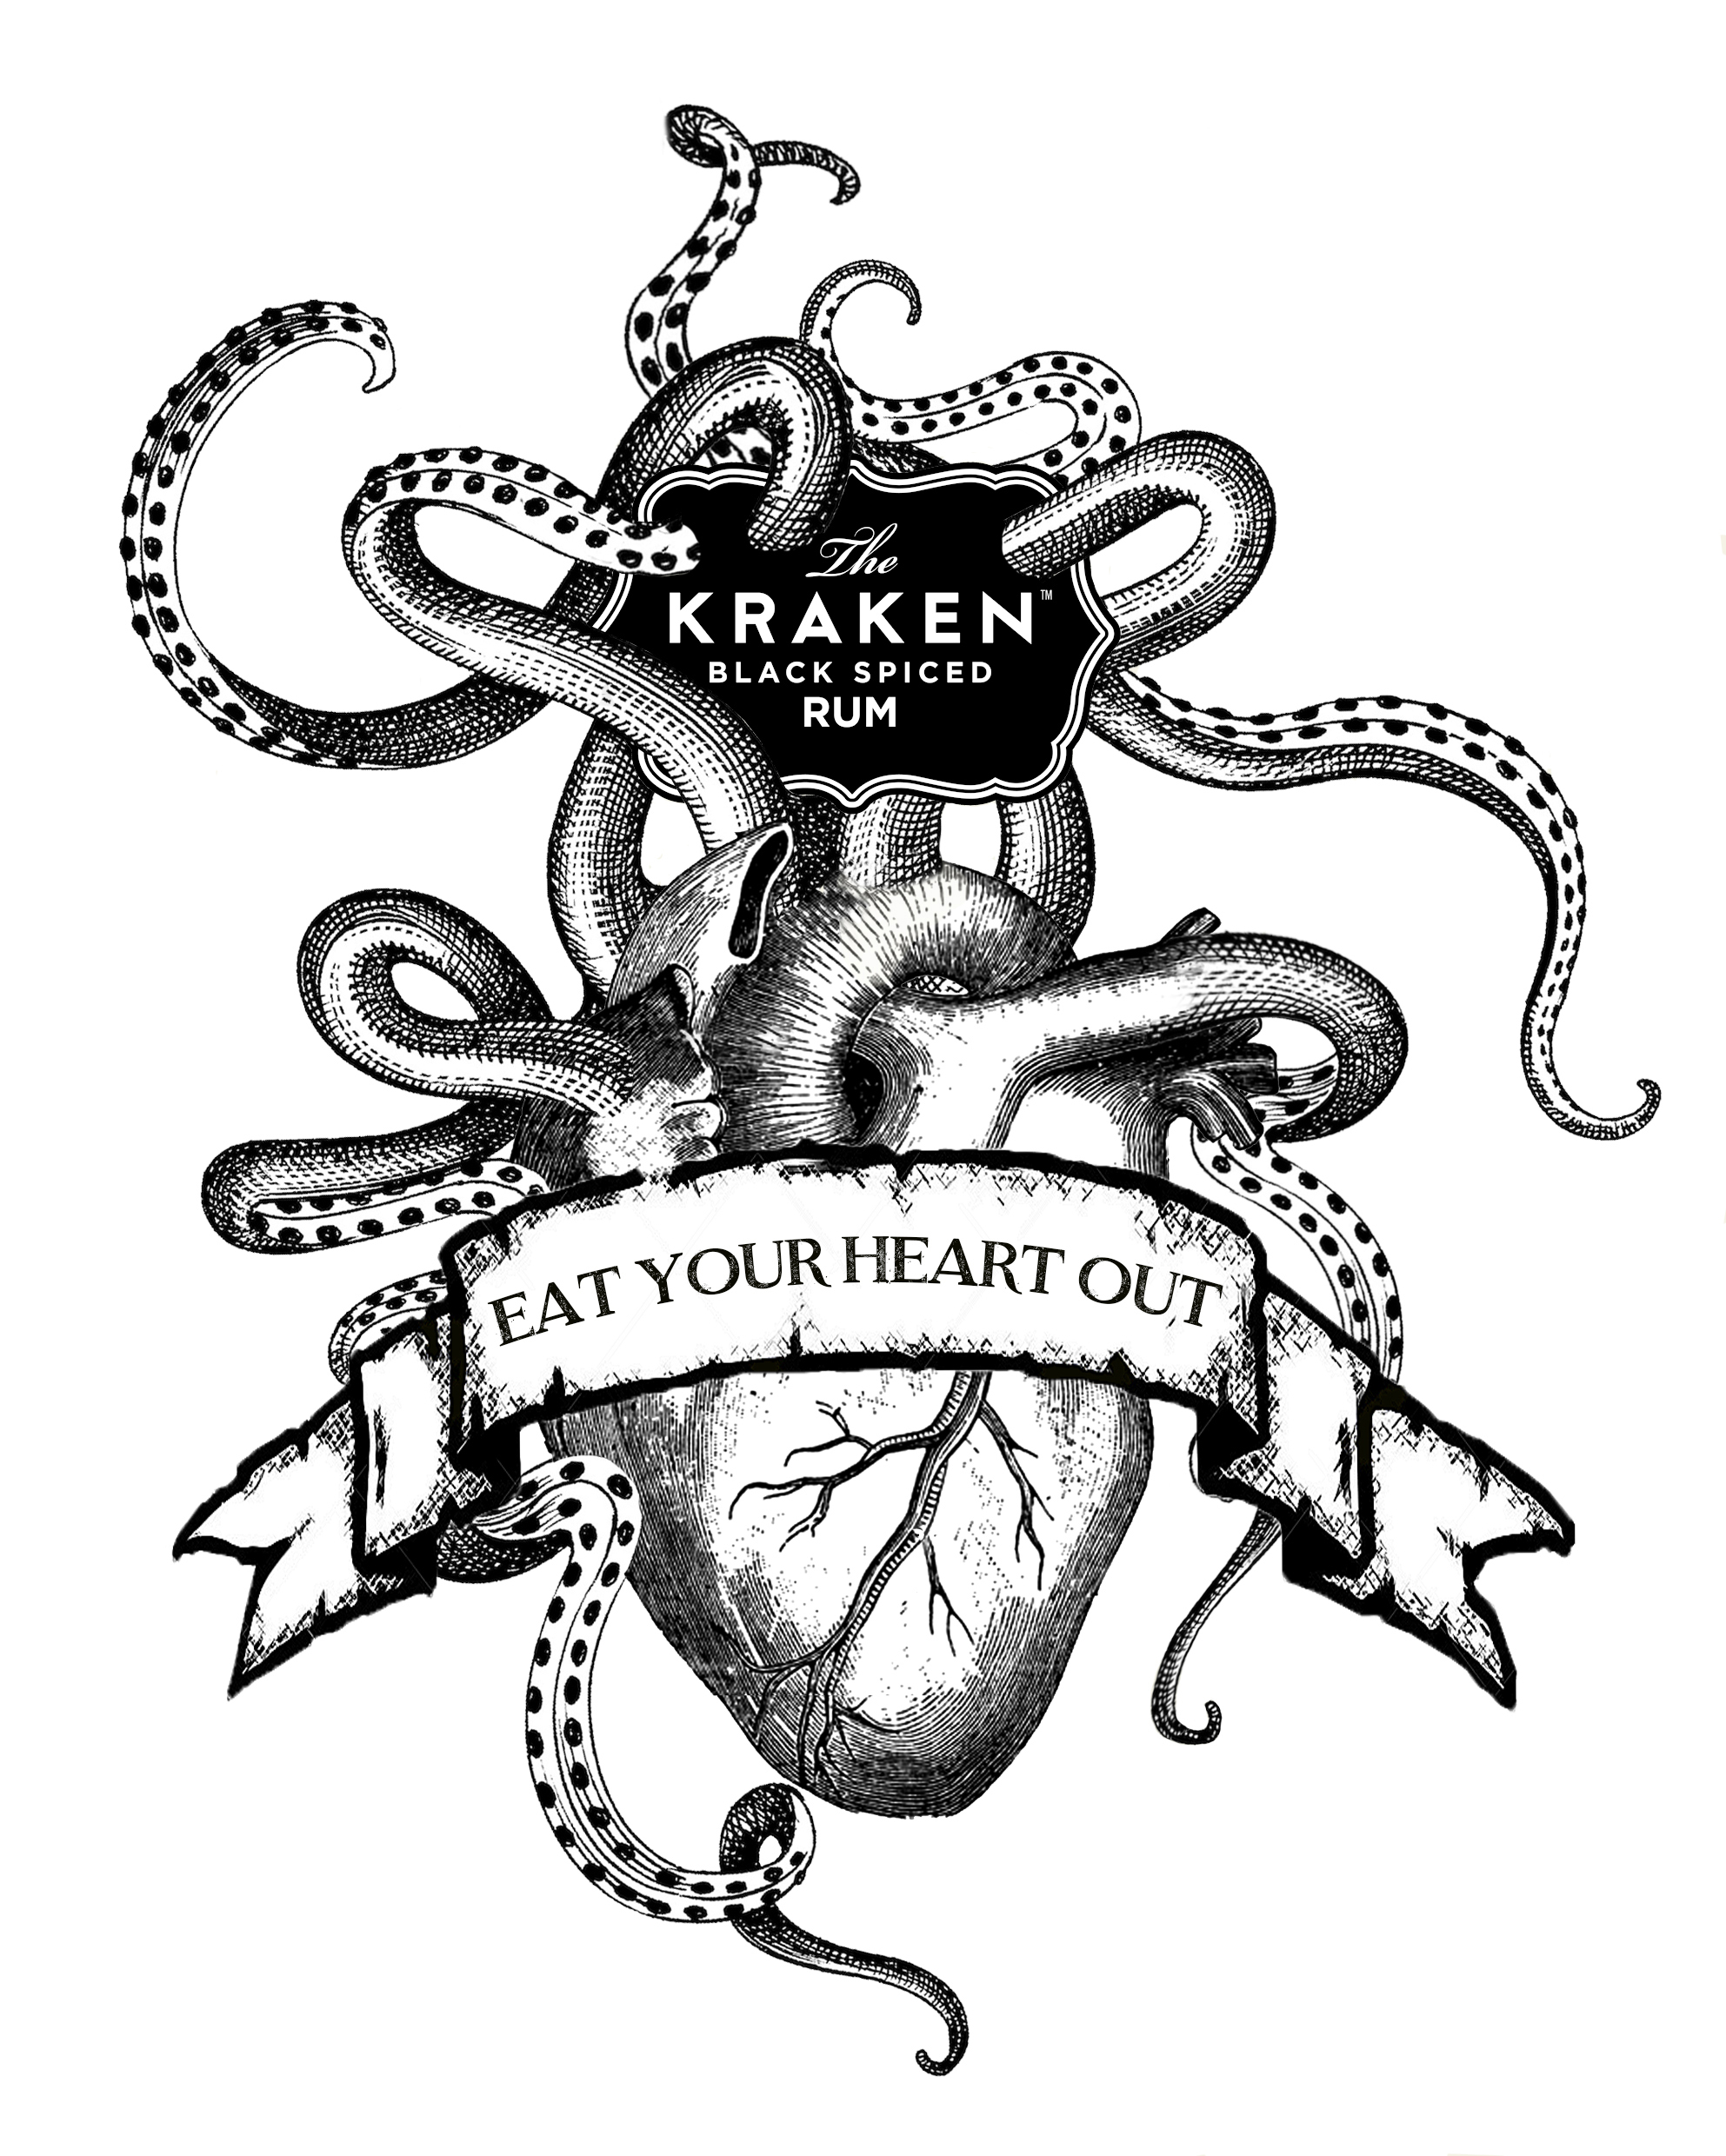 1000 images about tattoo inspirations on pinterest kraken best tattoos for men and octopus. Black Bedroom Furniture Sets. Home Design Ideas